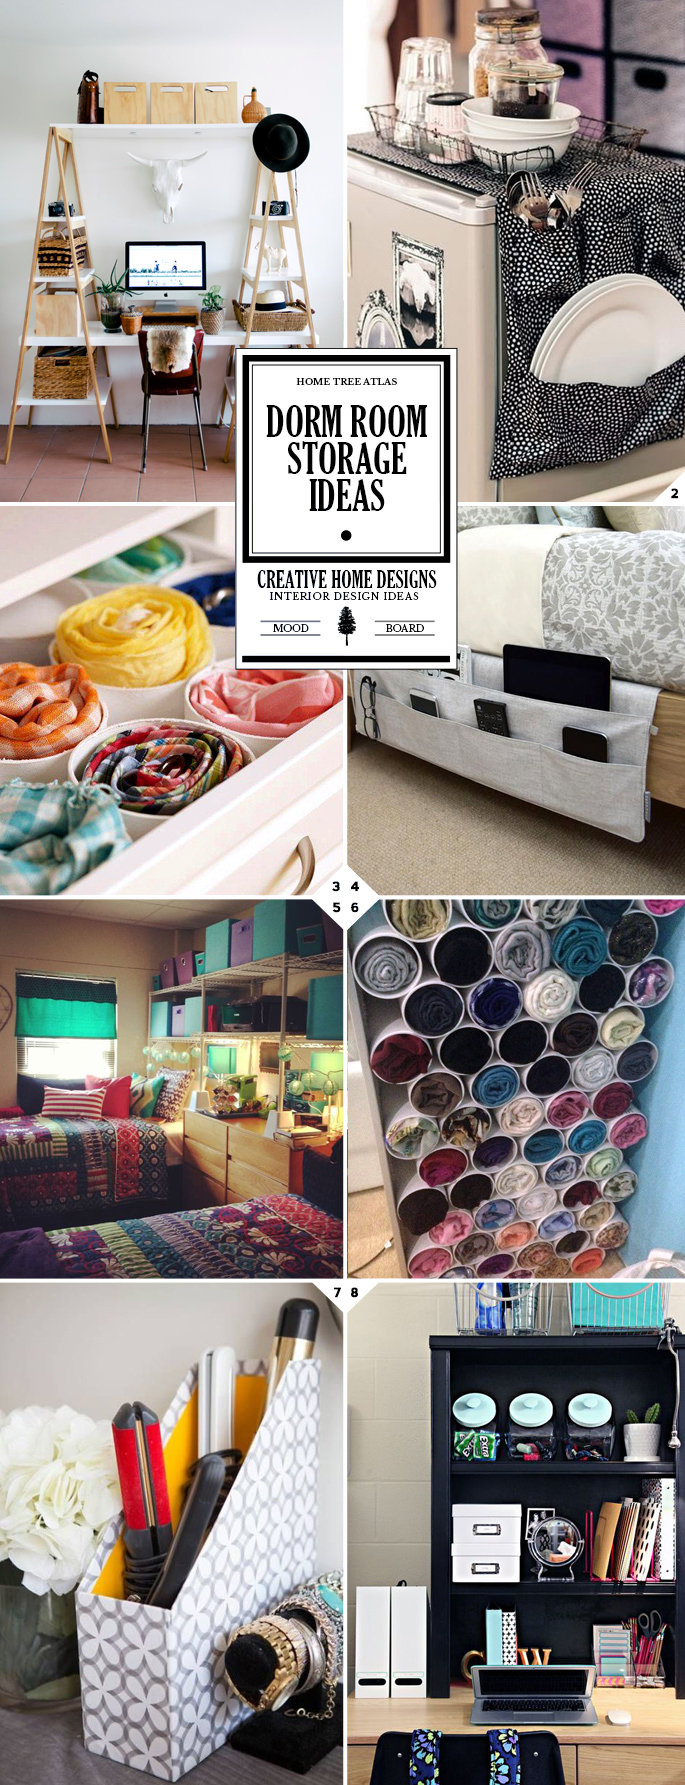 Dorm Room Storage: Make The Most Of Your Space: Dorm Room Storage Ideas